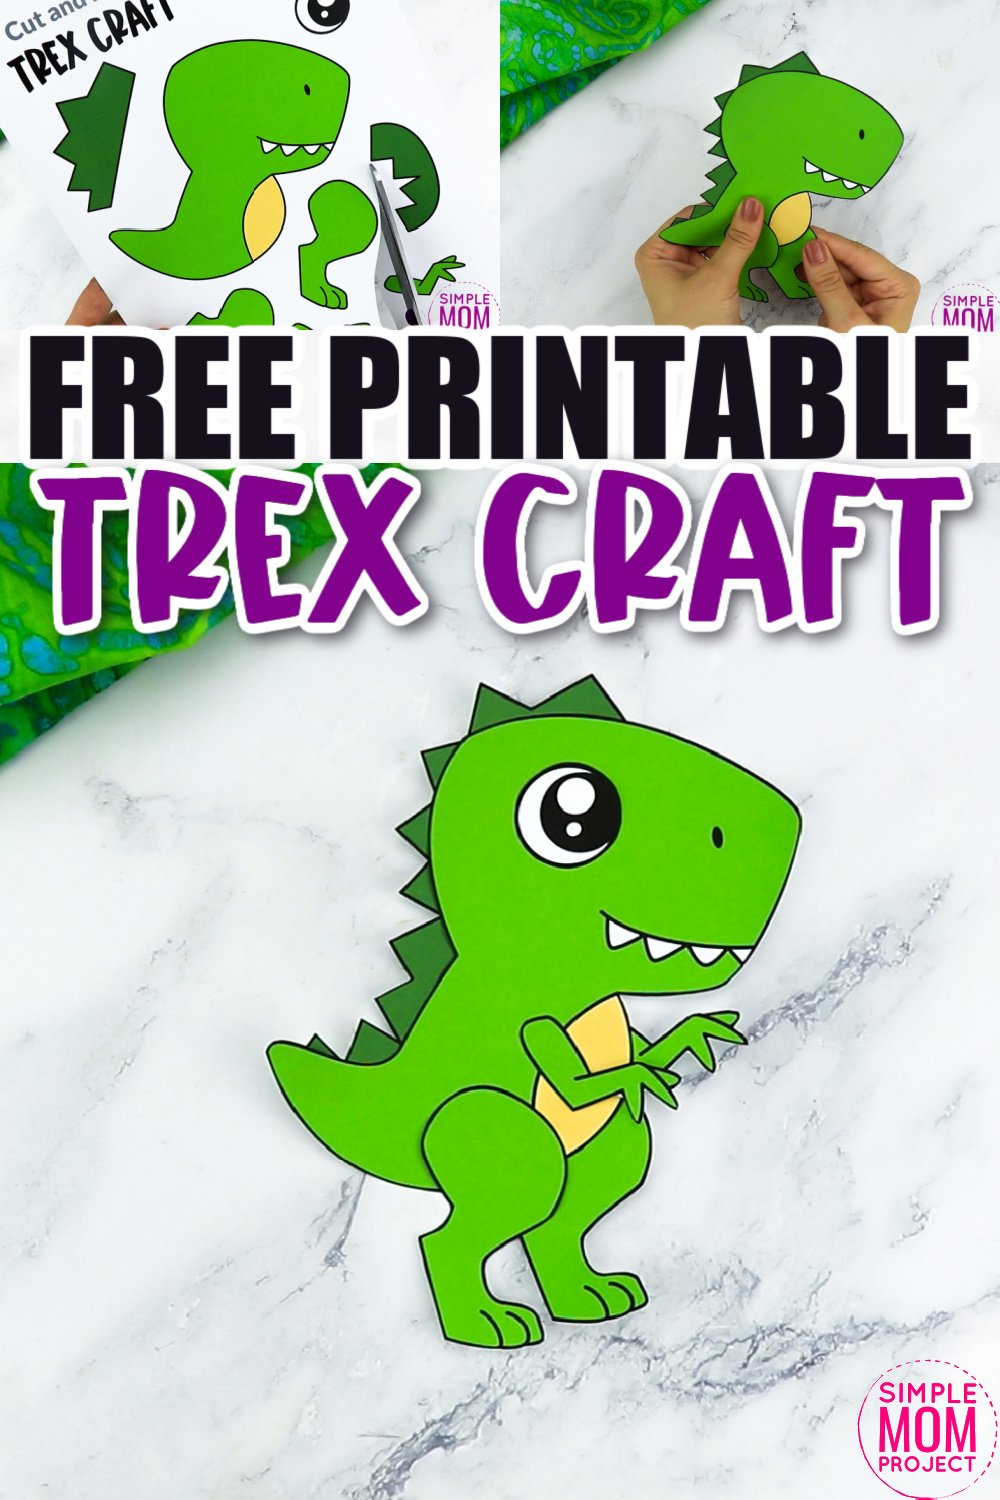 Does your preschooler love coloring their favorite dinosaurs? What about turning them into a paper plate toy? Use our free printable tyrannosaurus rex template to make this adorable dinosaur craft! This trex craft is perfect for kids of all ages including toddlers and kindergartners!